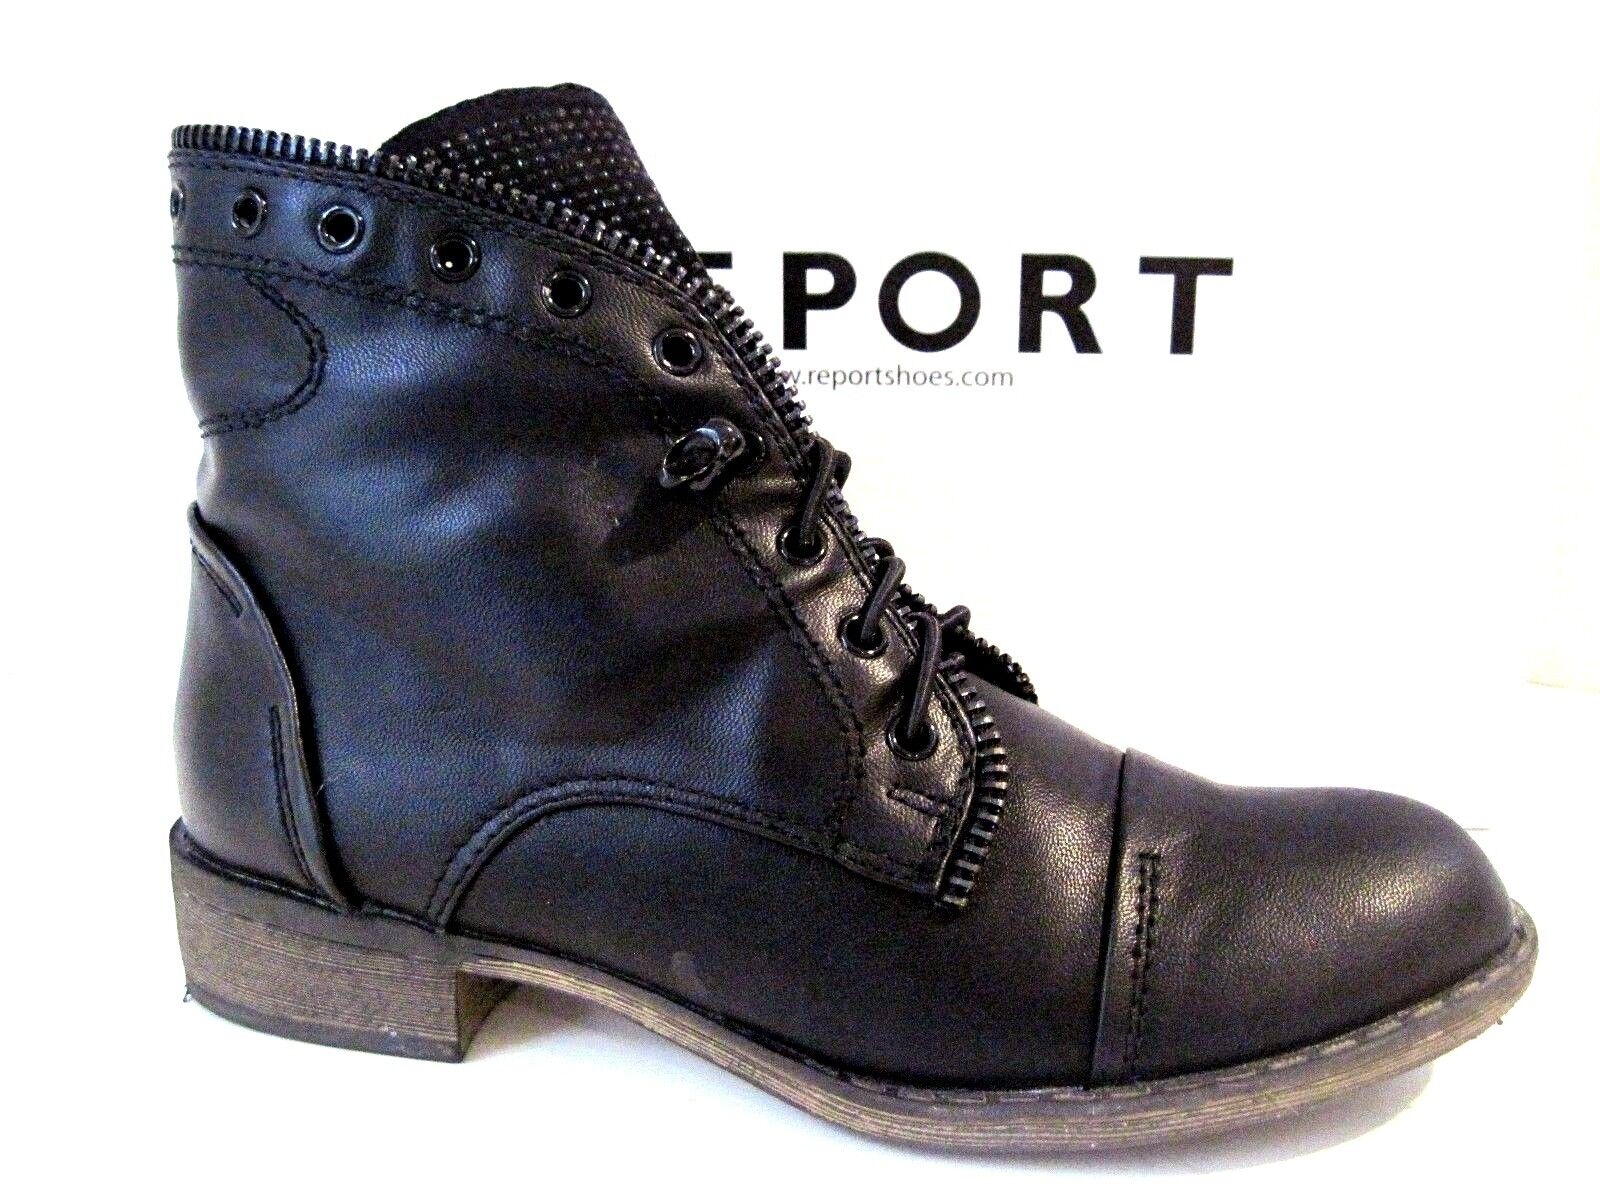 REPORT Ankle Women's Black NYLES Fashion Ankle REPORT Boots Size 7.5 9aa358